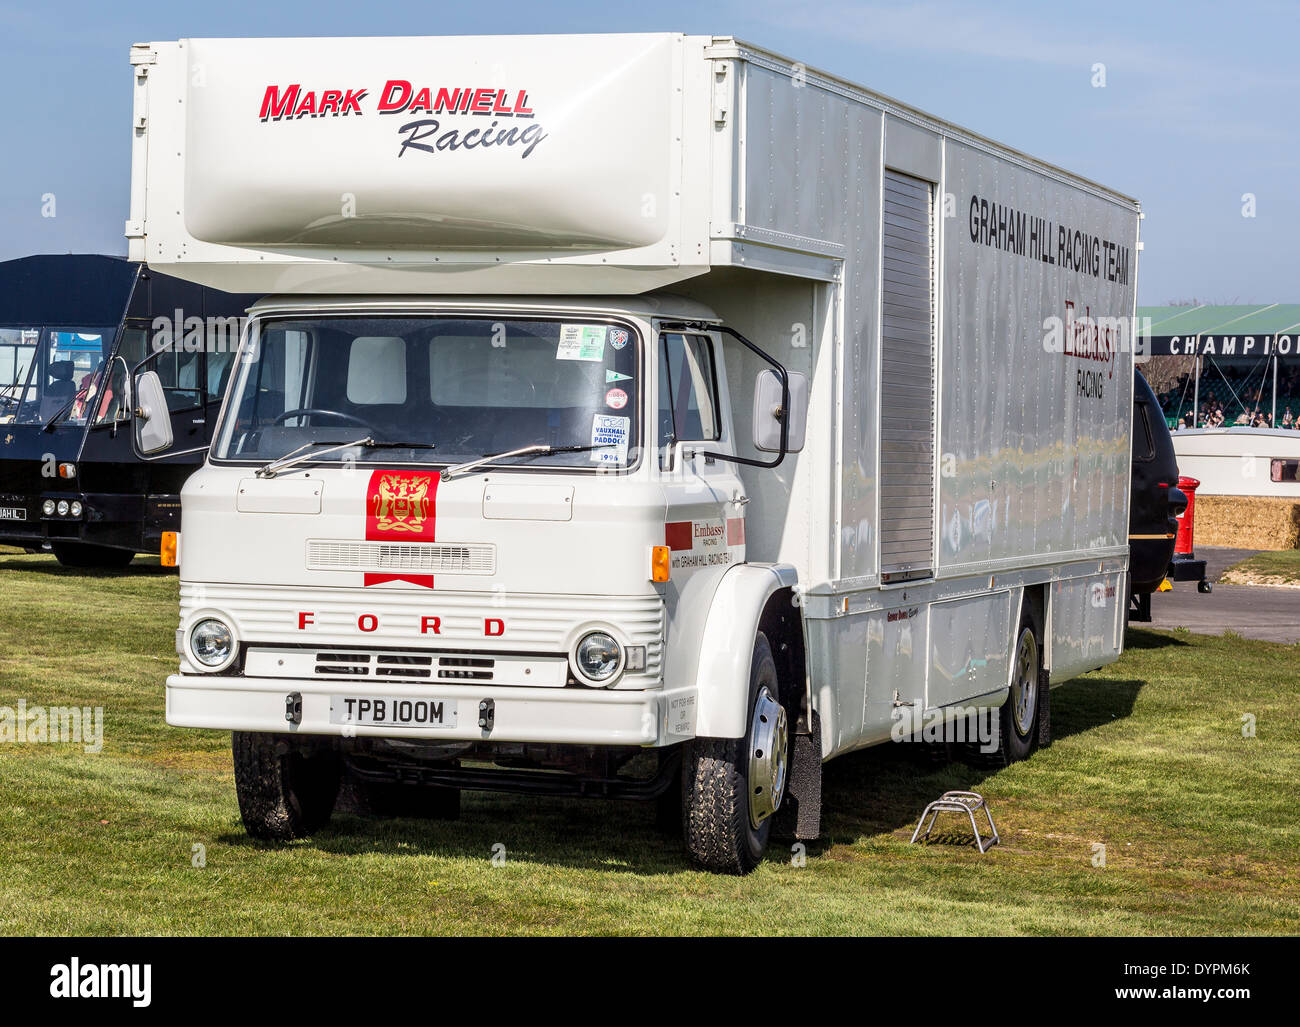 1974 Ford D Series transporter for Mark Daniell Racing, formally Grahan Hill Racing, 72nd Goodwood Members meeting, Sussex, UK - Stock Image